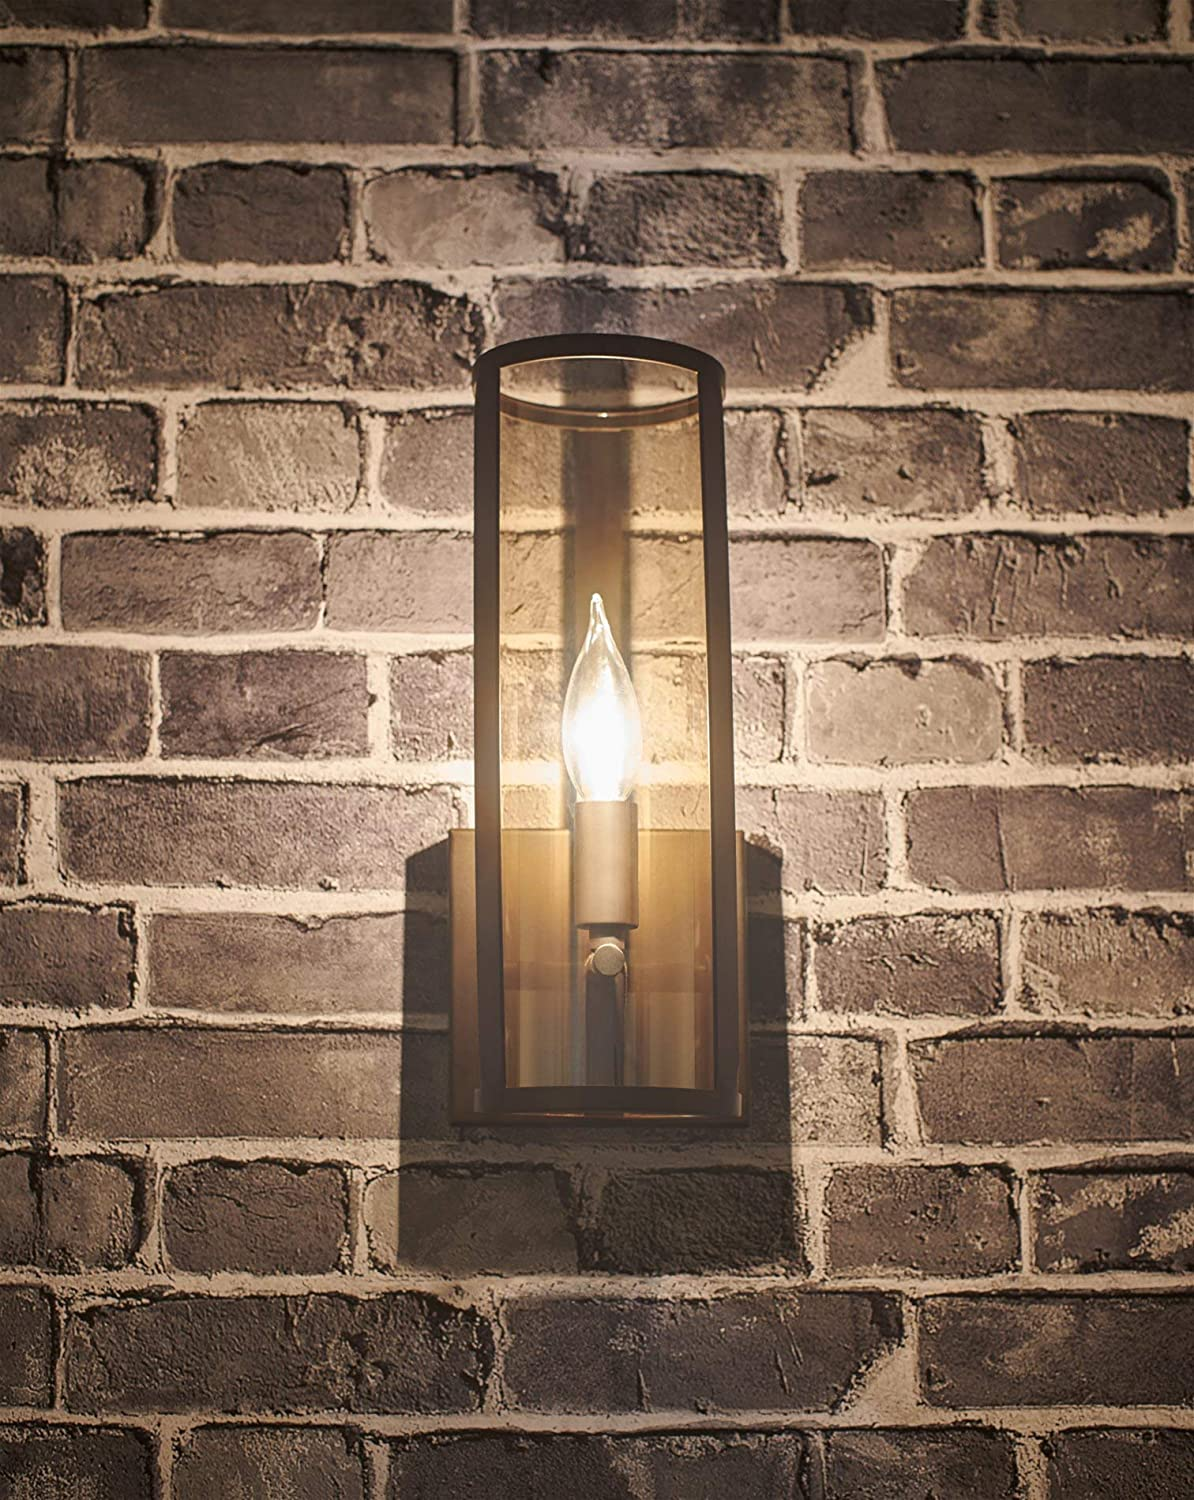 Kira Home Cypress 12 Modern Rustic Wall Sconce Wall Light Amber Tinted Cylinder Glass Shade, Oil Rubbed Bronze Finish